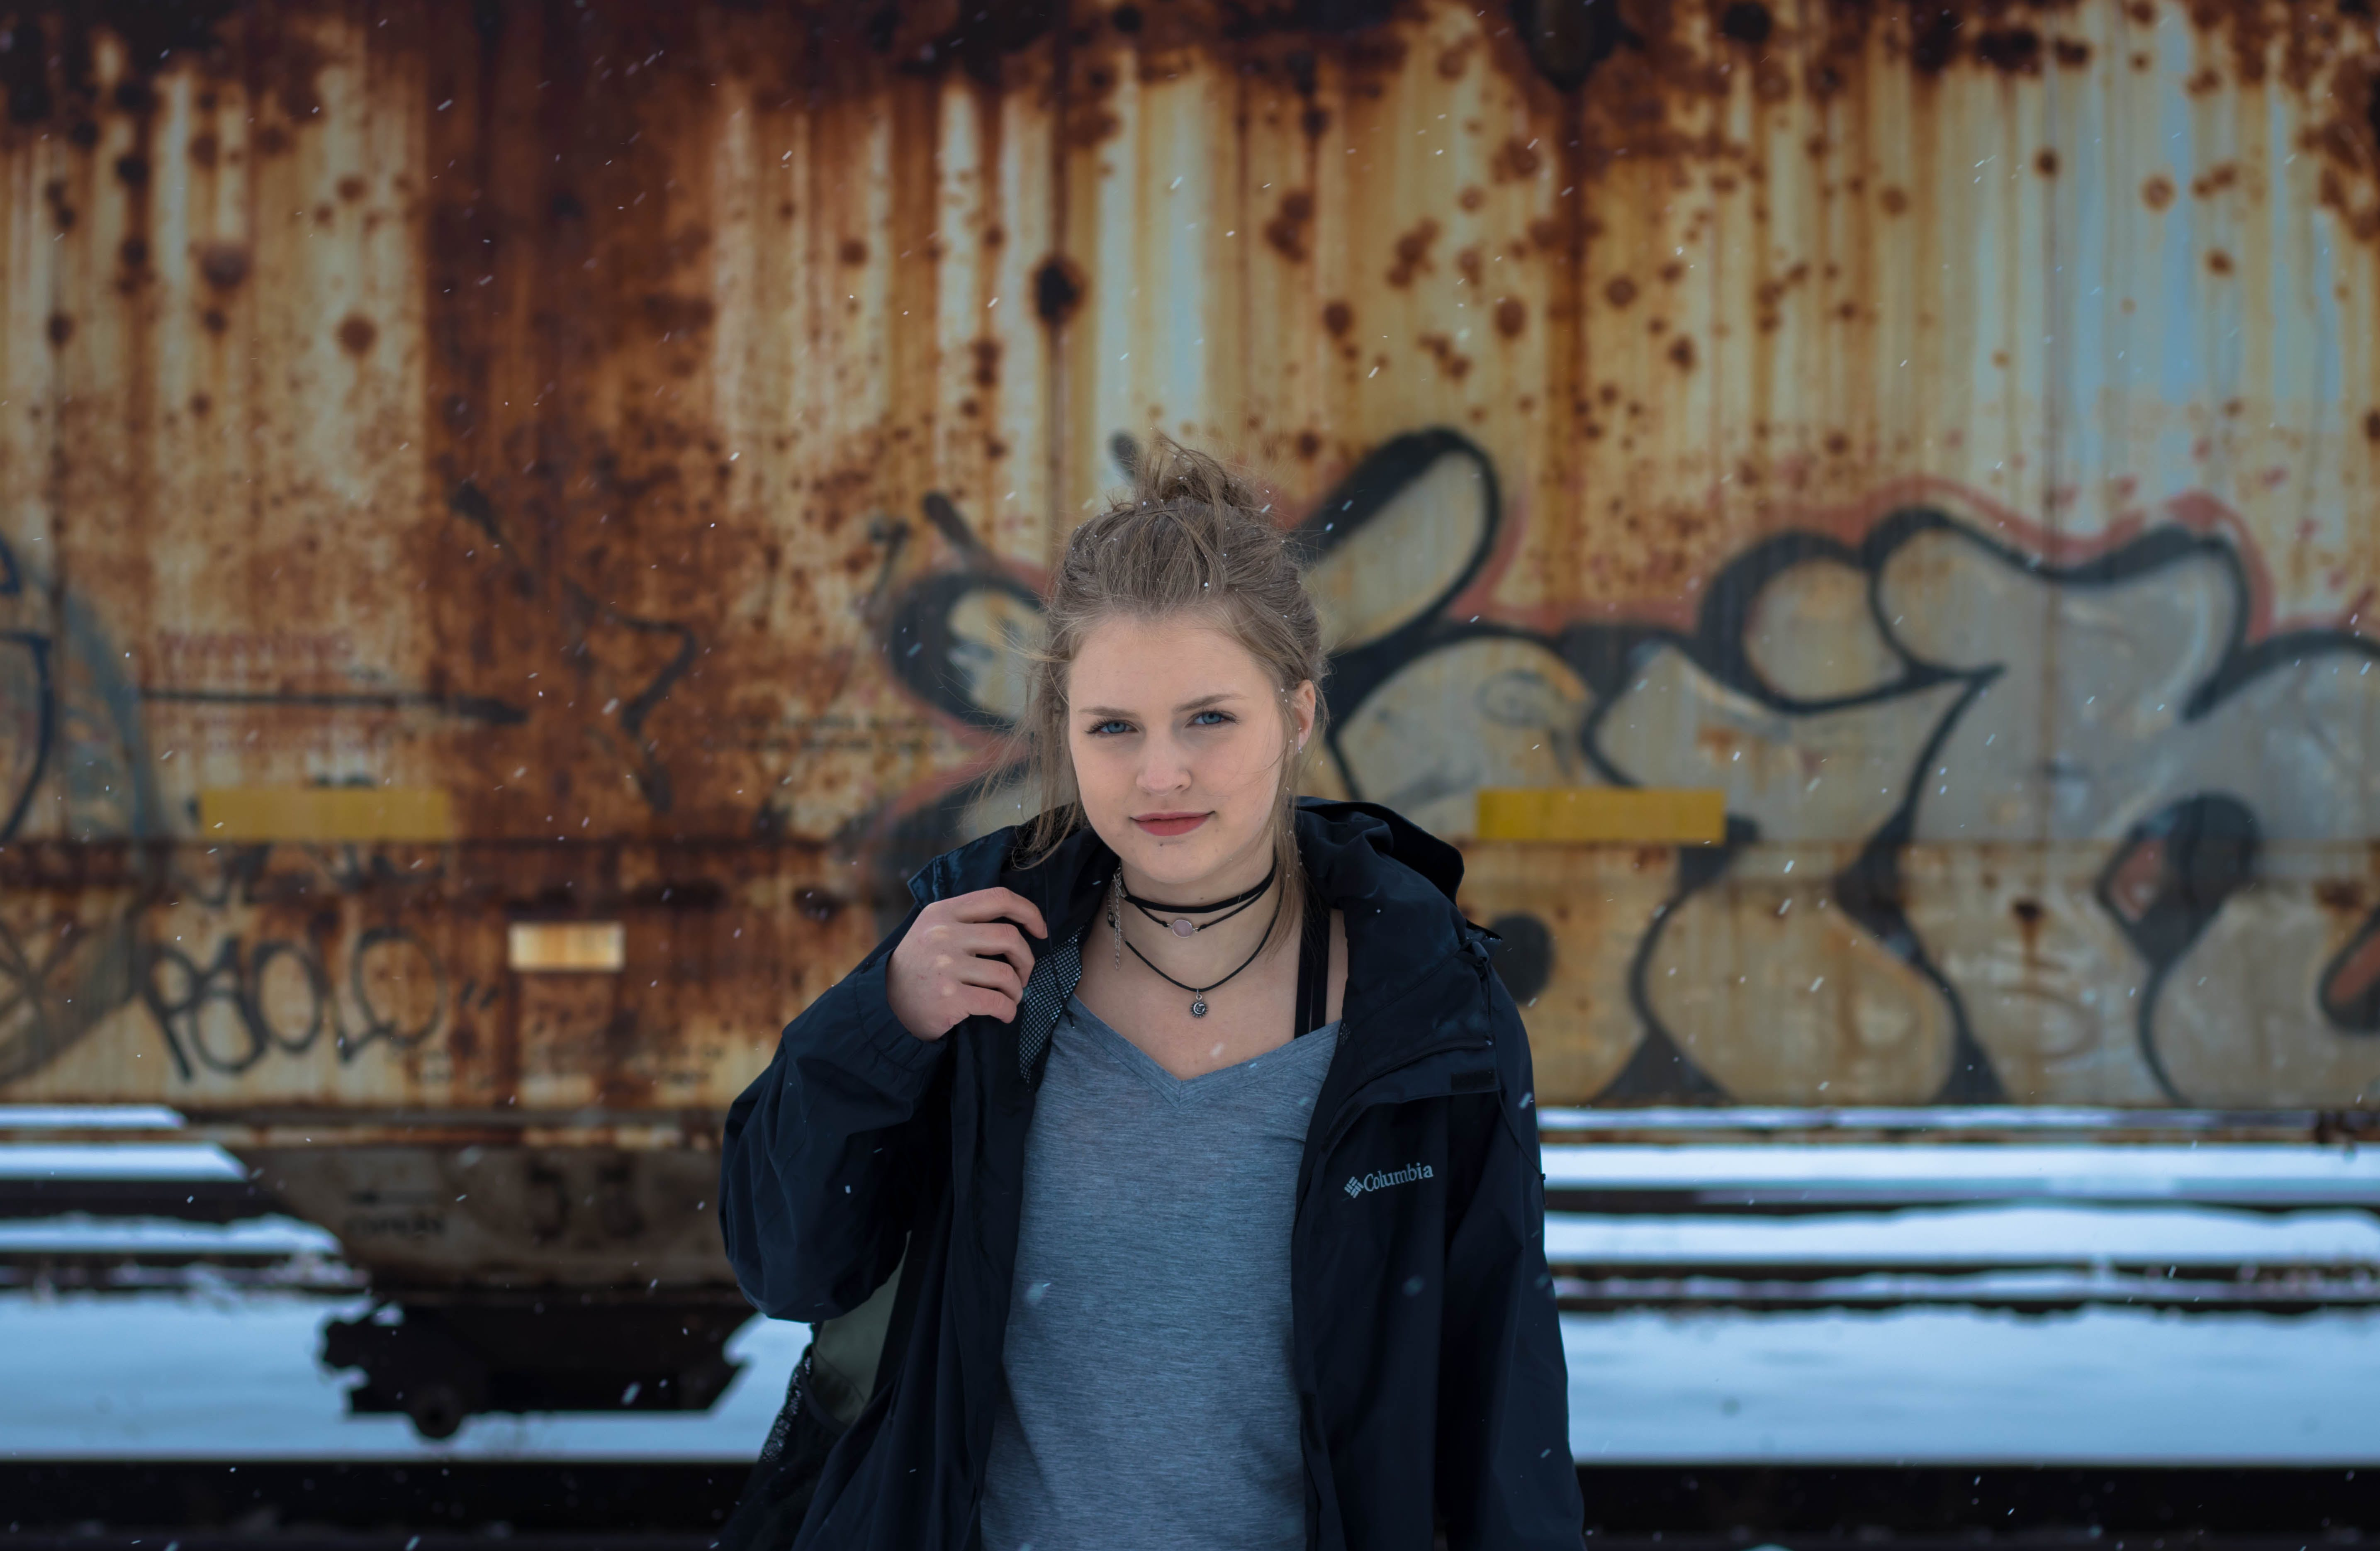 fashion, frau, graffiti